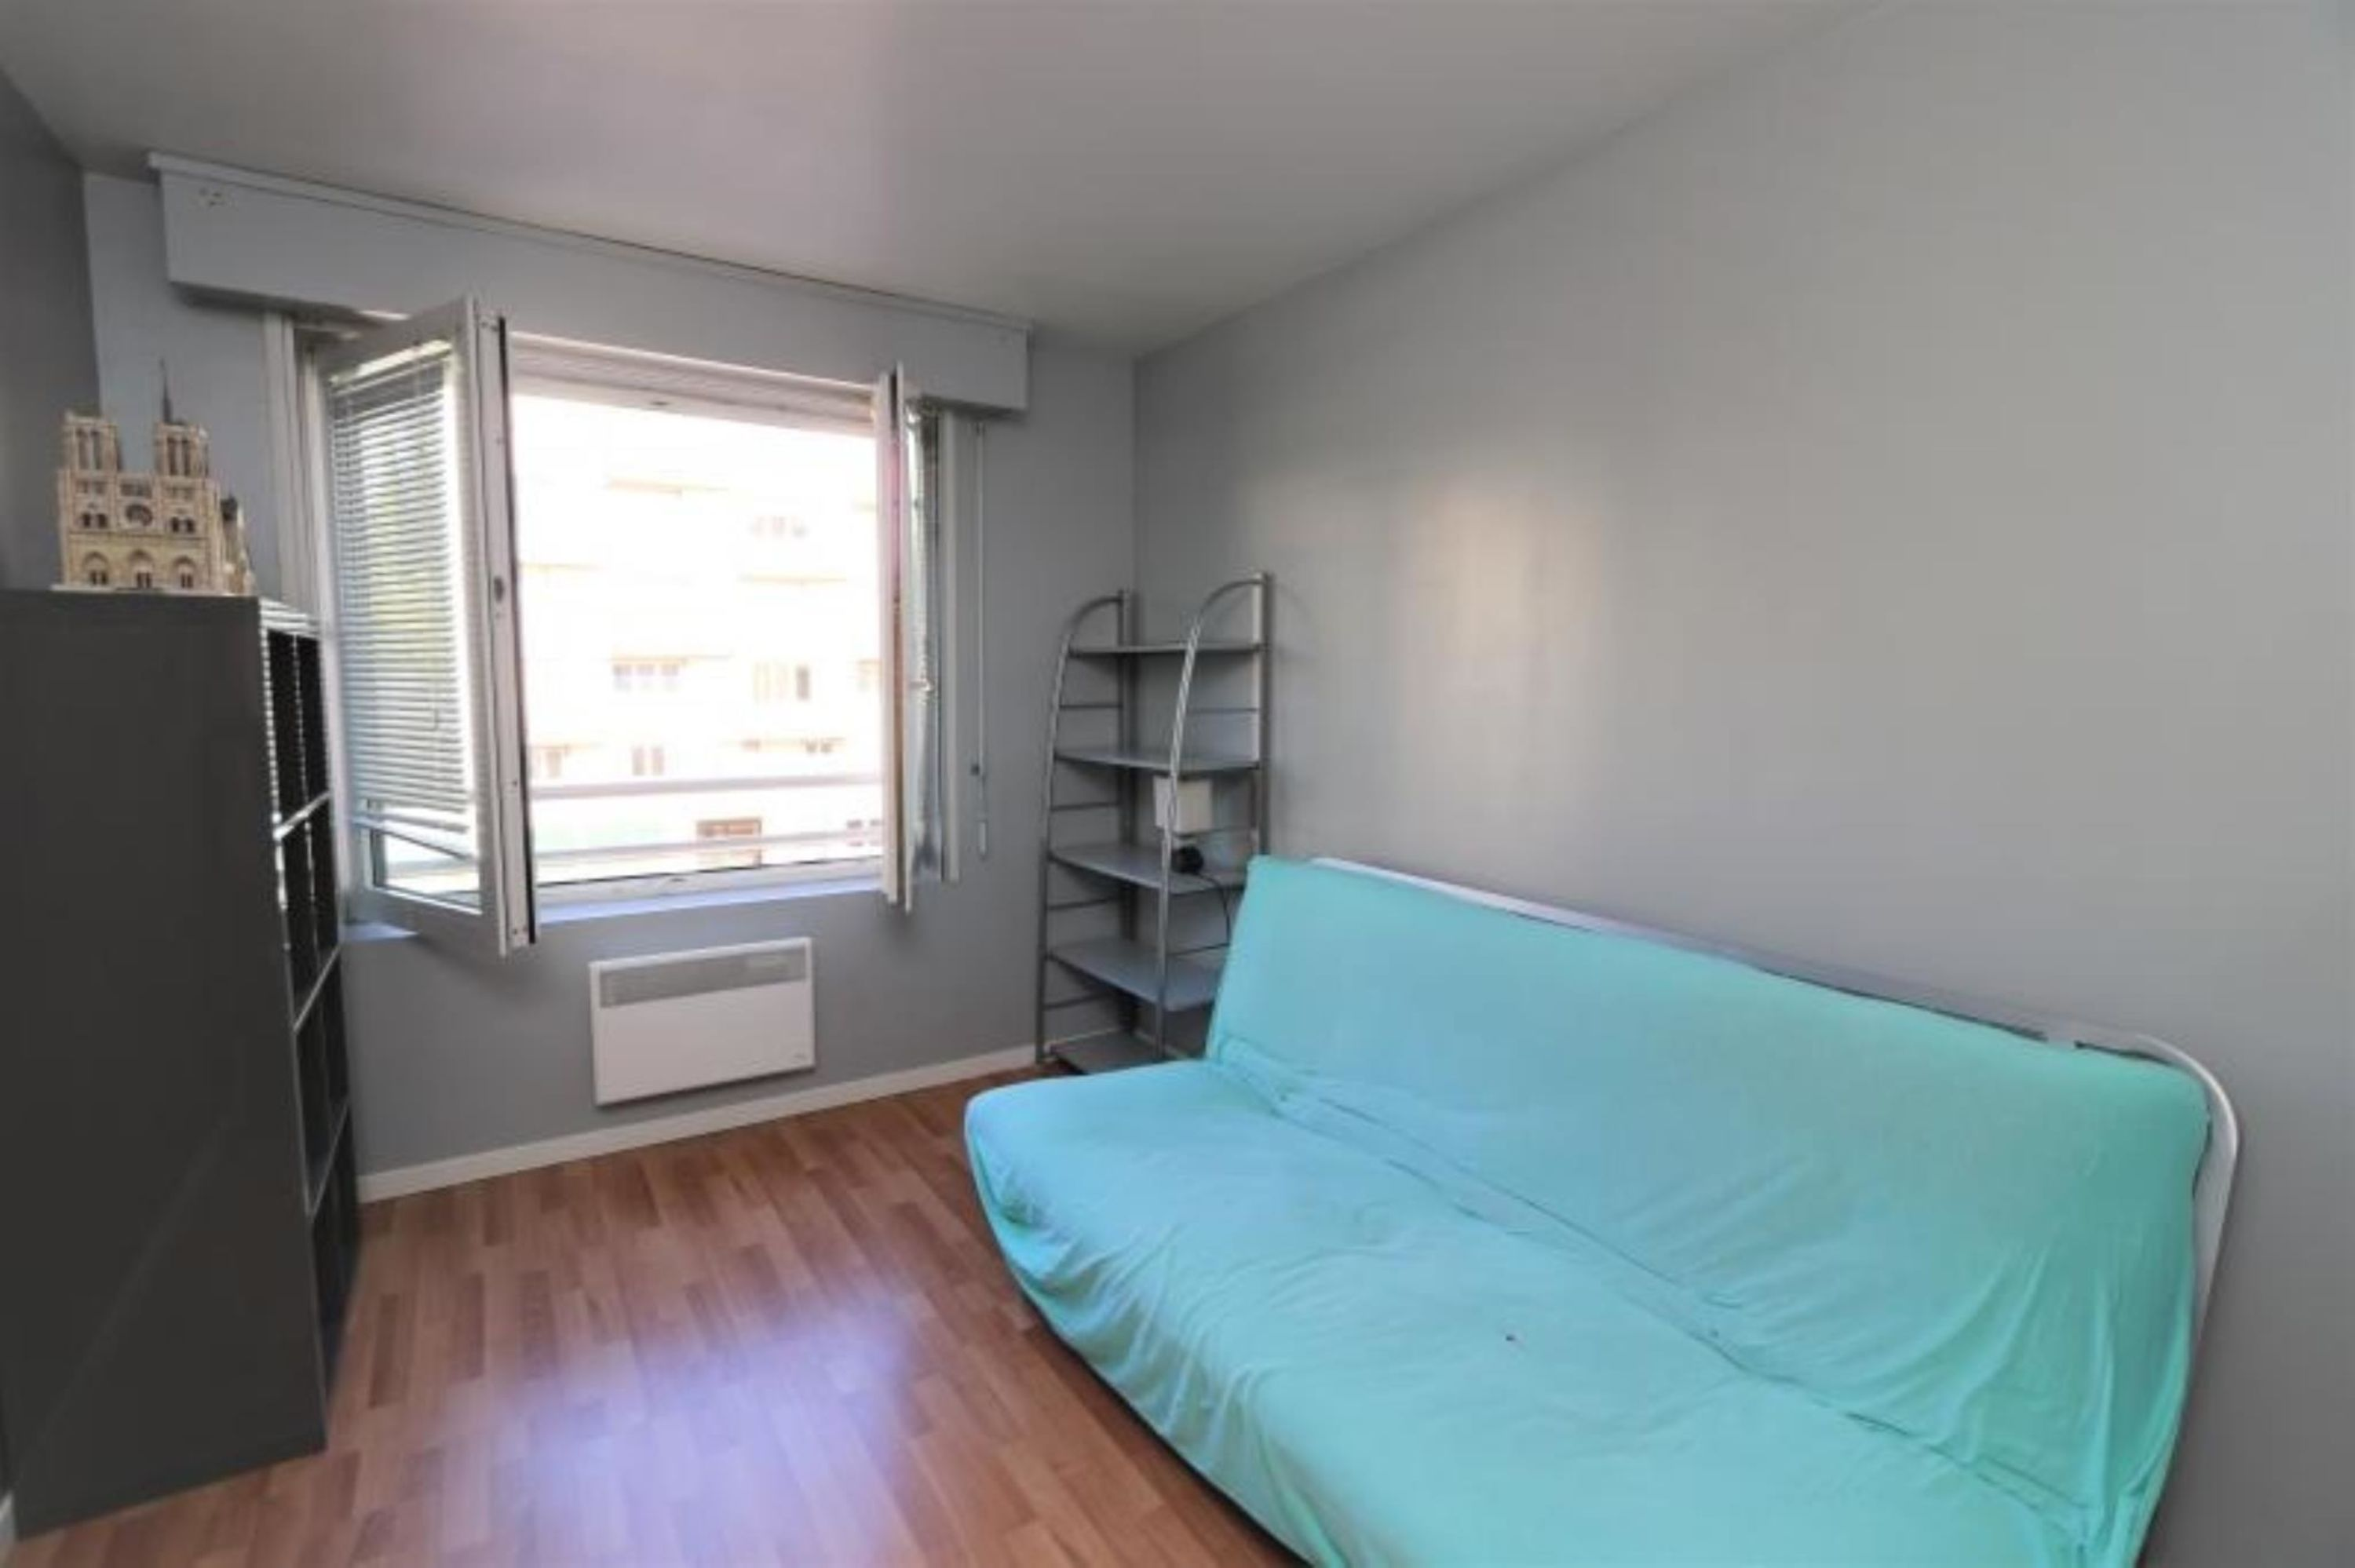 agence immobilière sevres 92 le chesnay 78 achat vente location appartement maison immobilier LMHT ANF VKIZTNAK